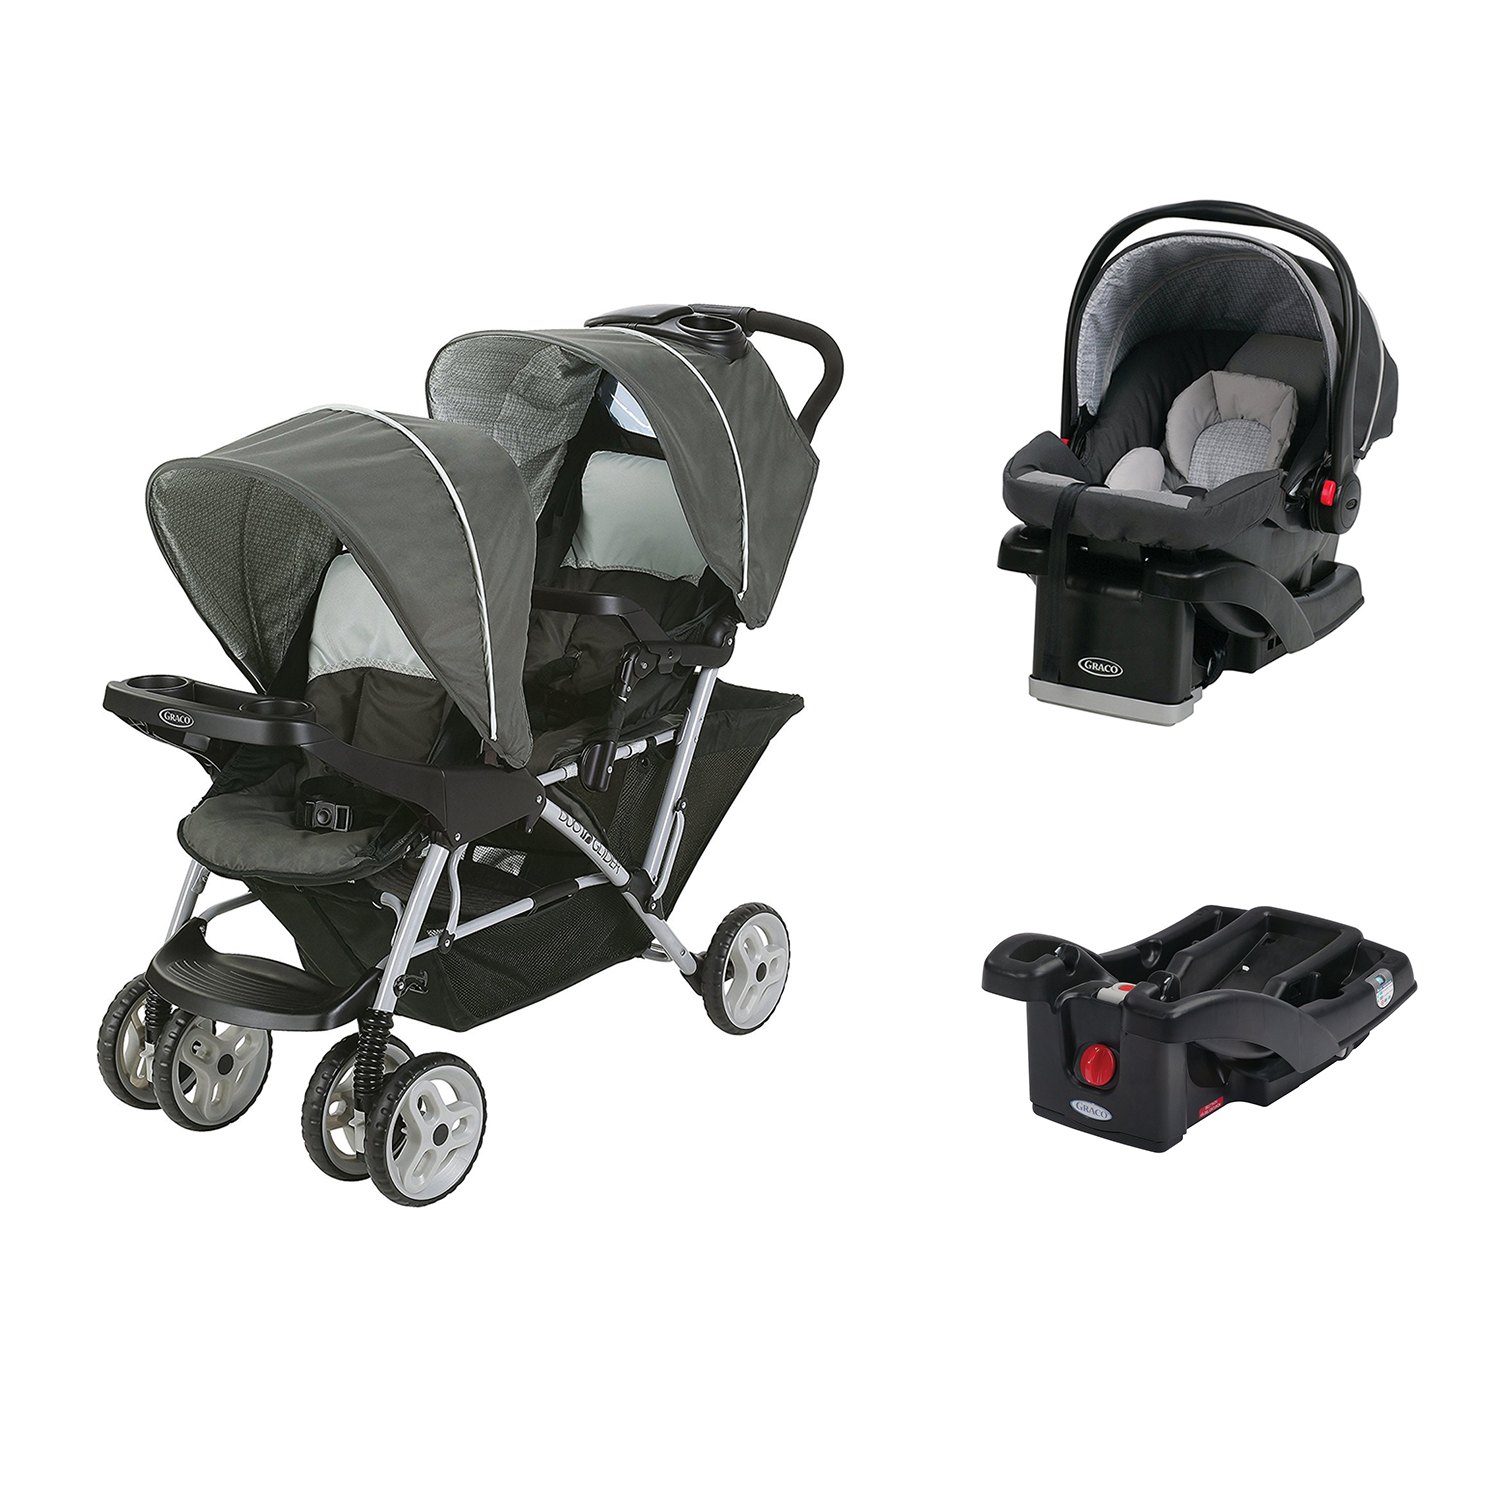 graco duoglider click connect double stroller car seat base travel system ebay. Black Bedroom Furniture Sets. Home Design Ideas